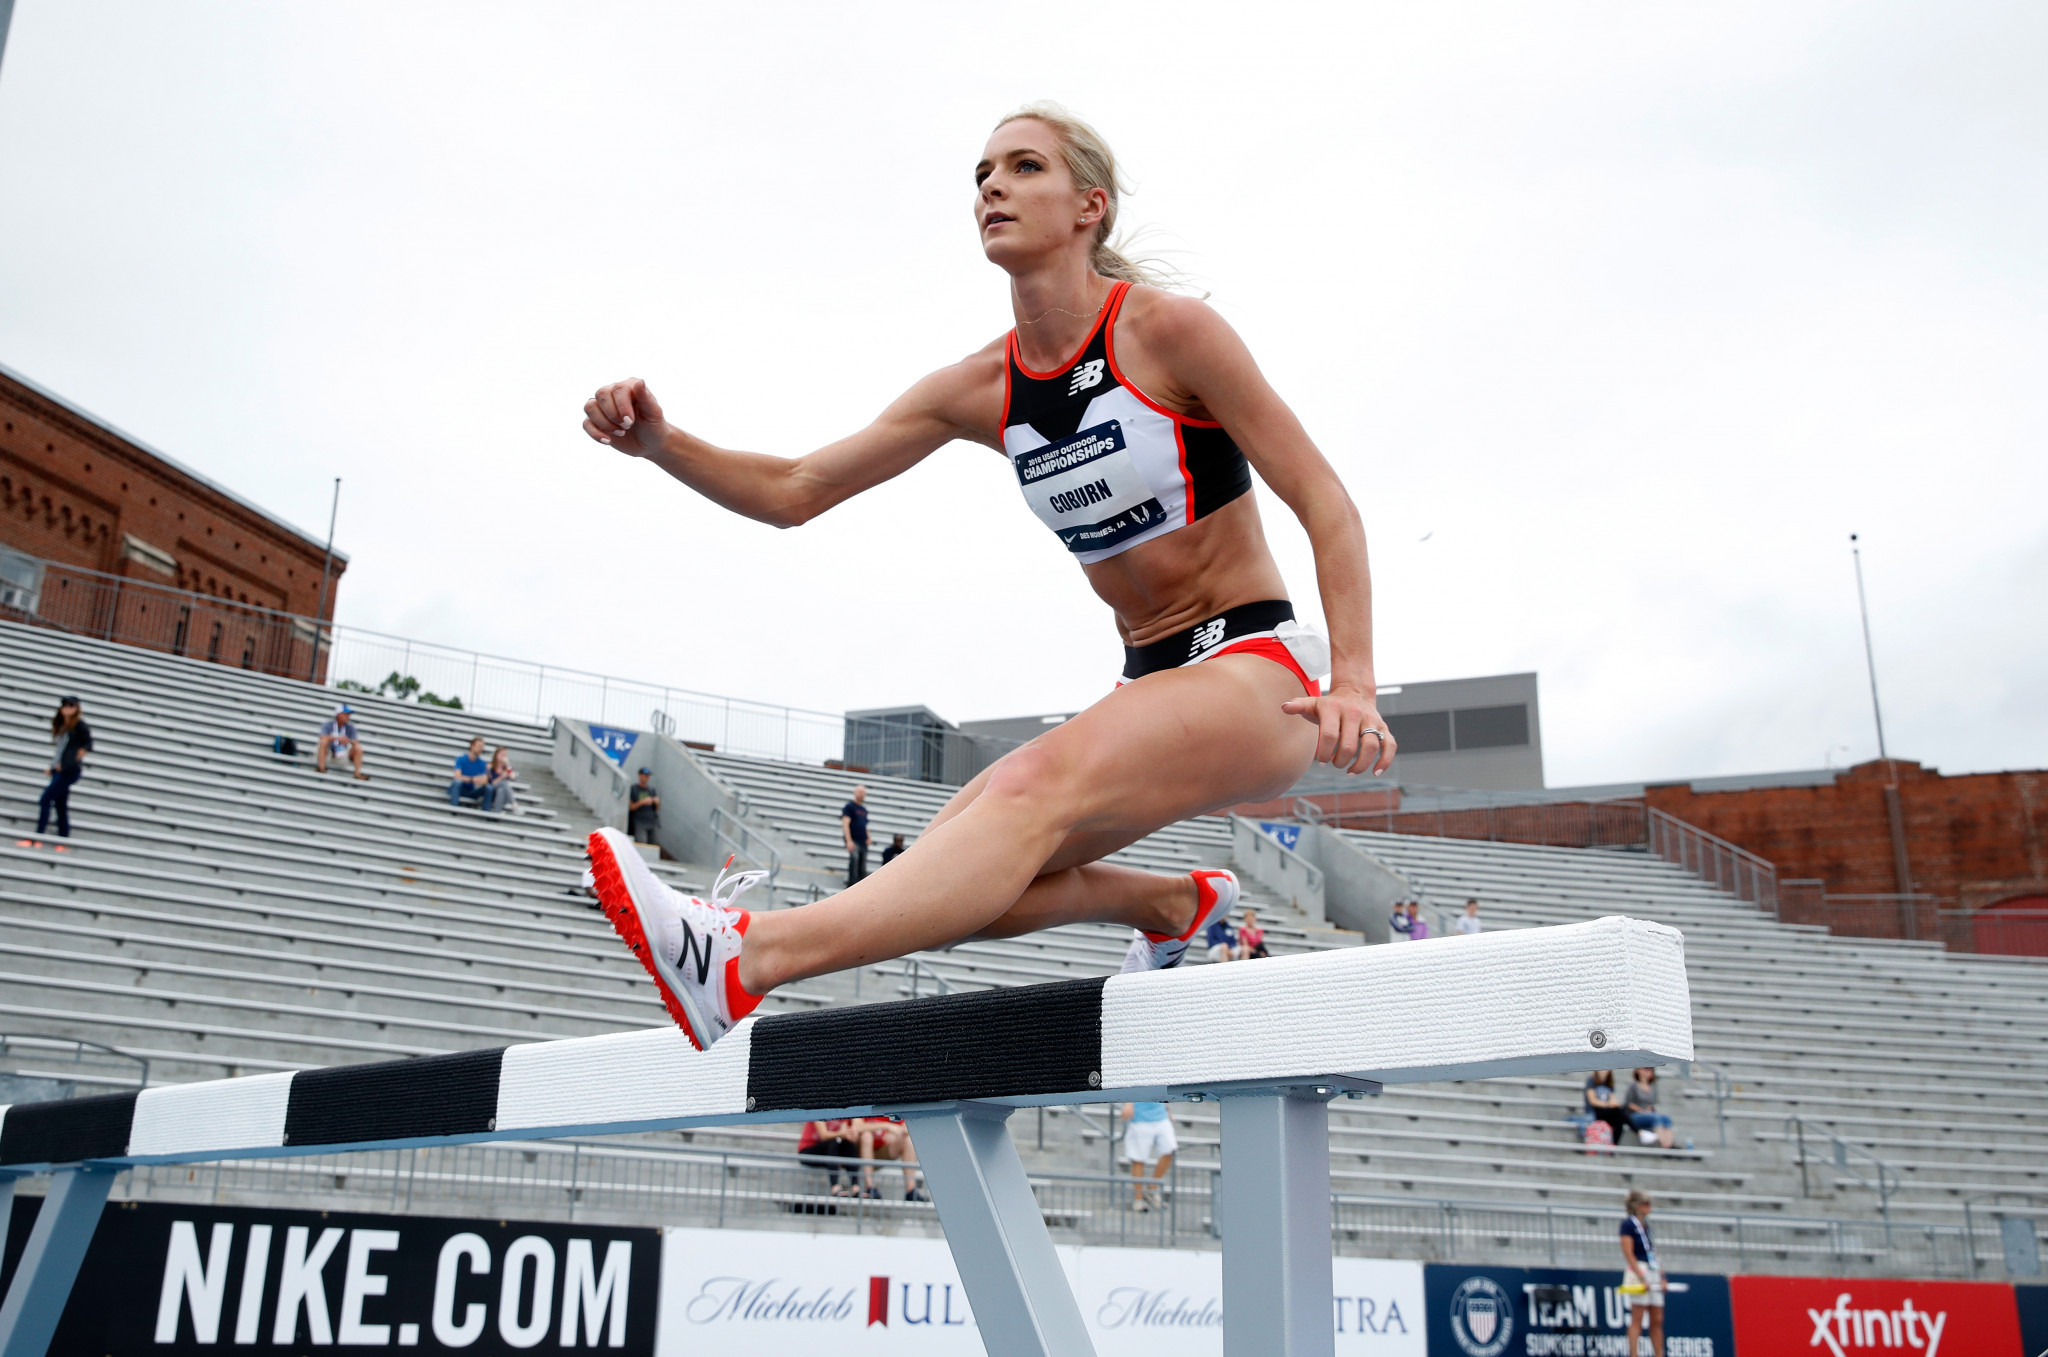 American world steeplechase champion Emma Coburn is among athletes to have called for change at WADA in recent weeks ©Getty Images